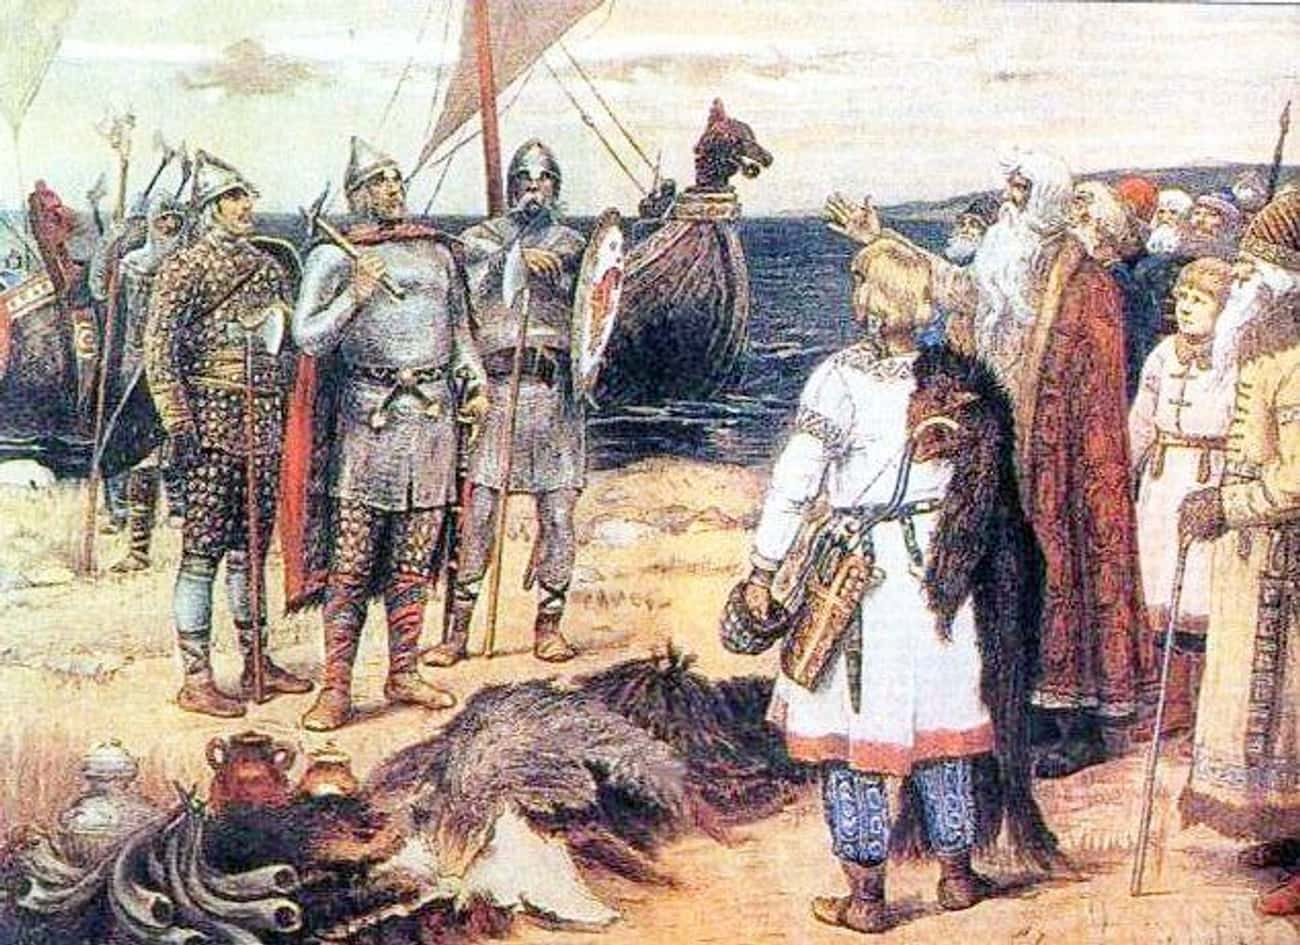 Vikings Married For Legal And Financial Reasons Rather Than Love